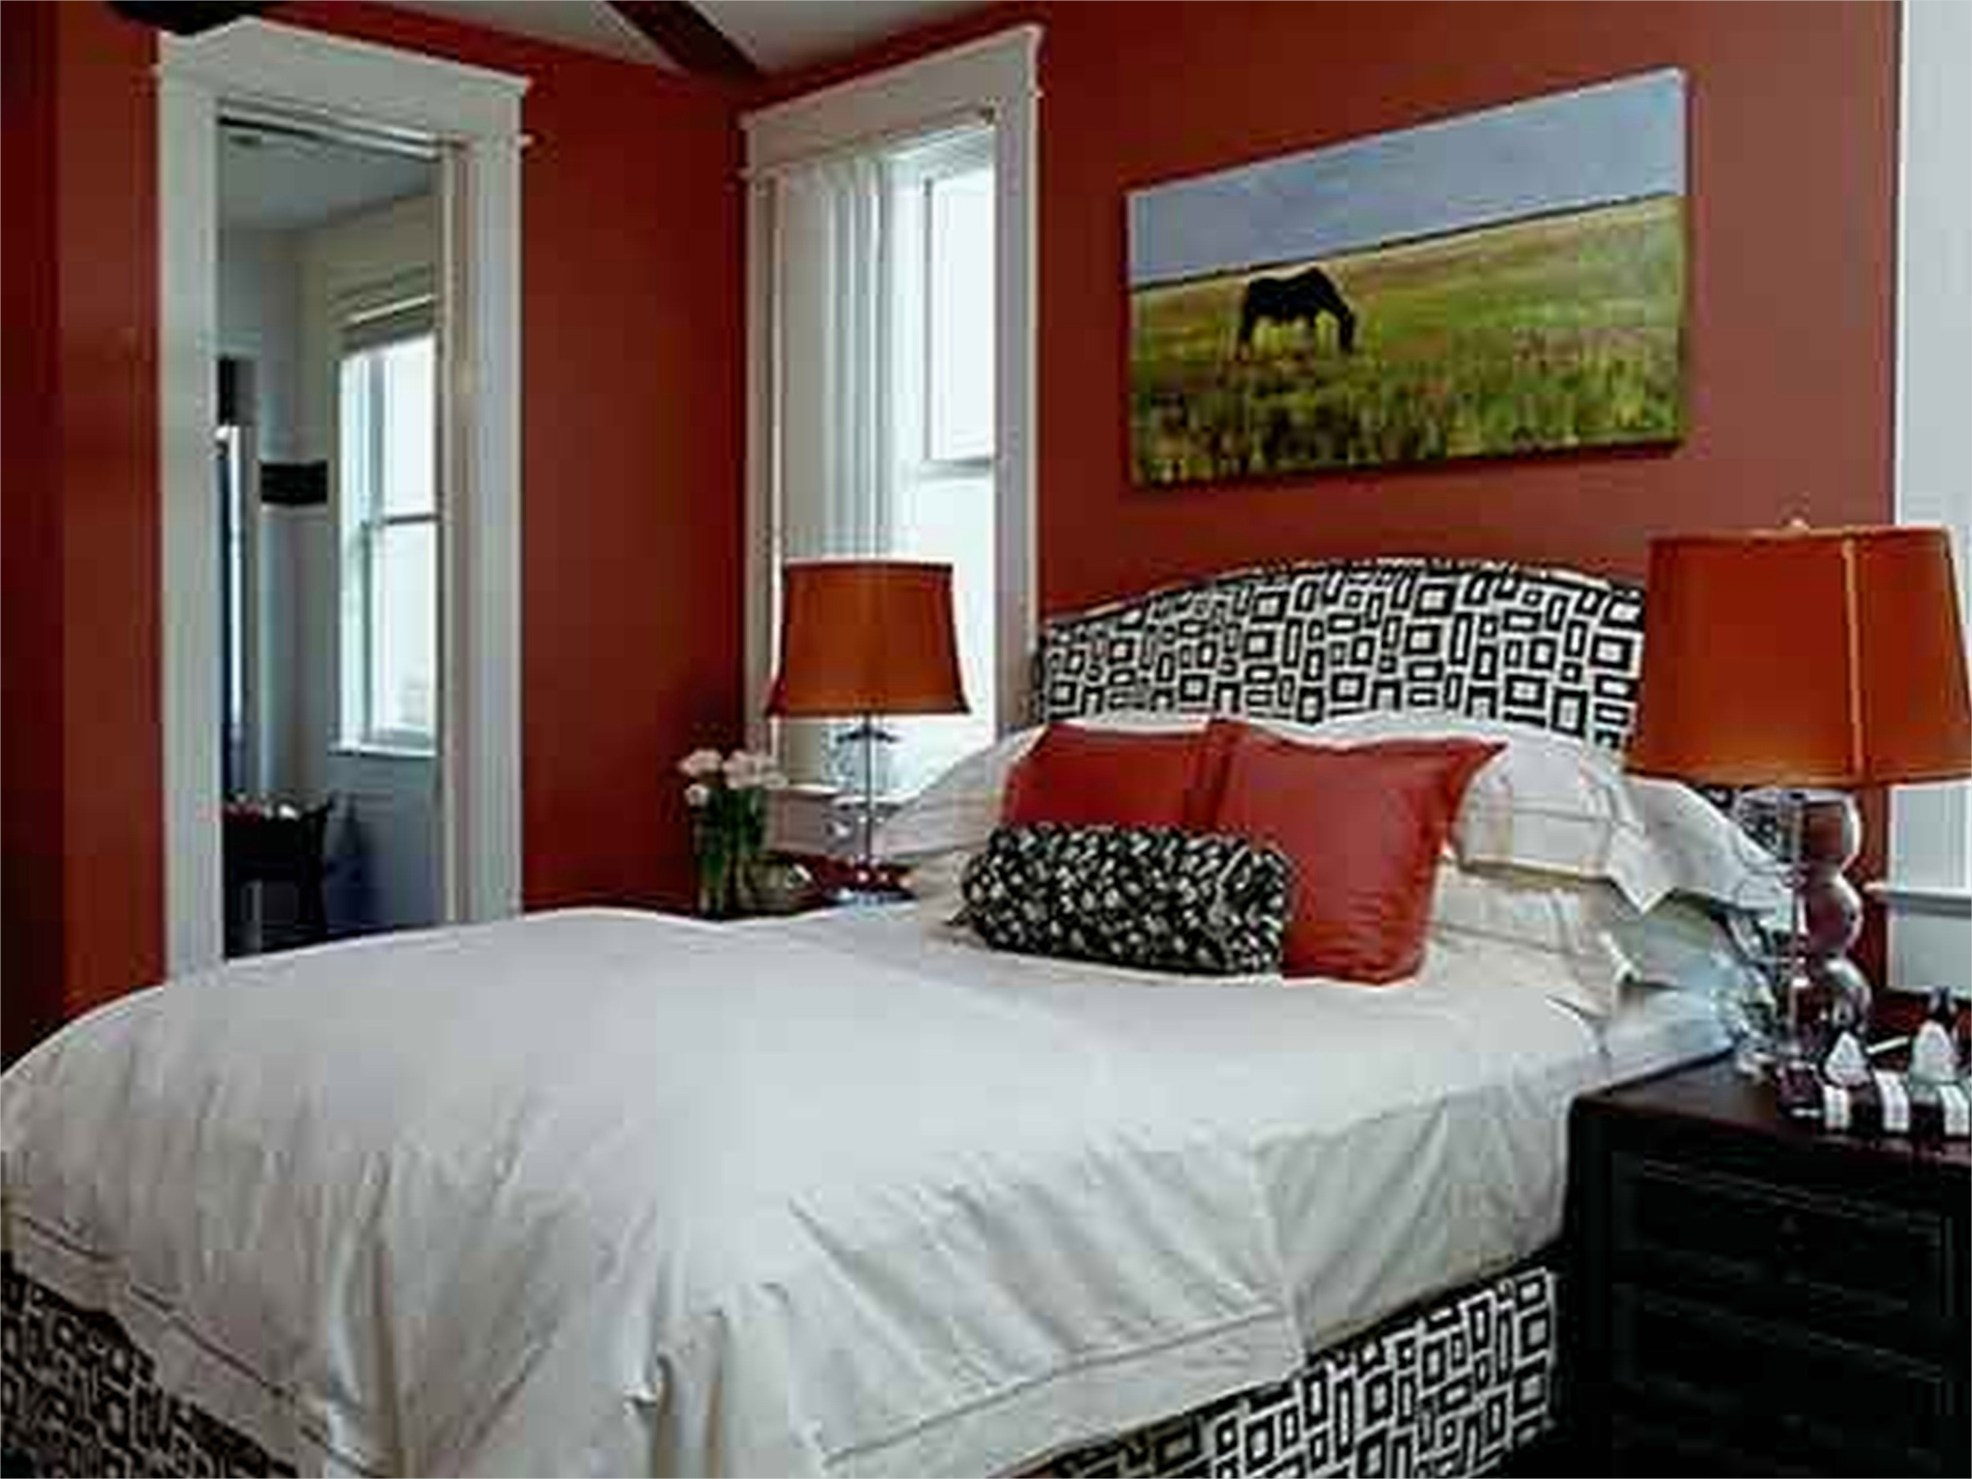 43 Stunning Small Bedroom Decorating Ideas On A Budget 77 Small Bedroom Decorating Ideas A Bud Diy Bedroom Decorating Ideas Pinterest Low Bud 4